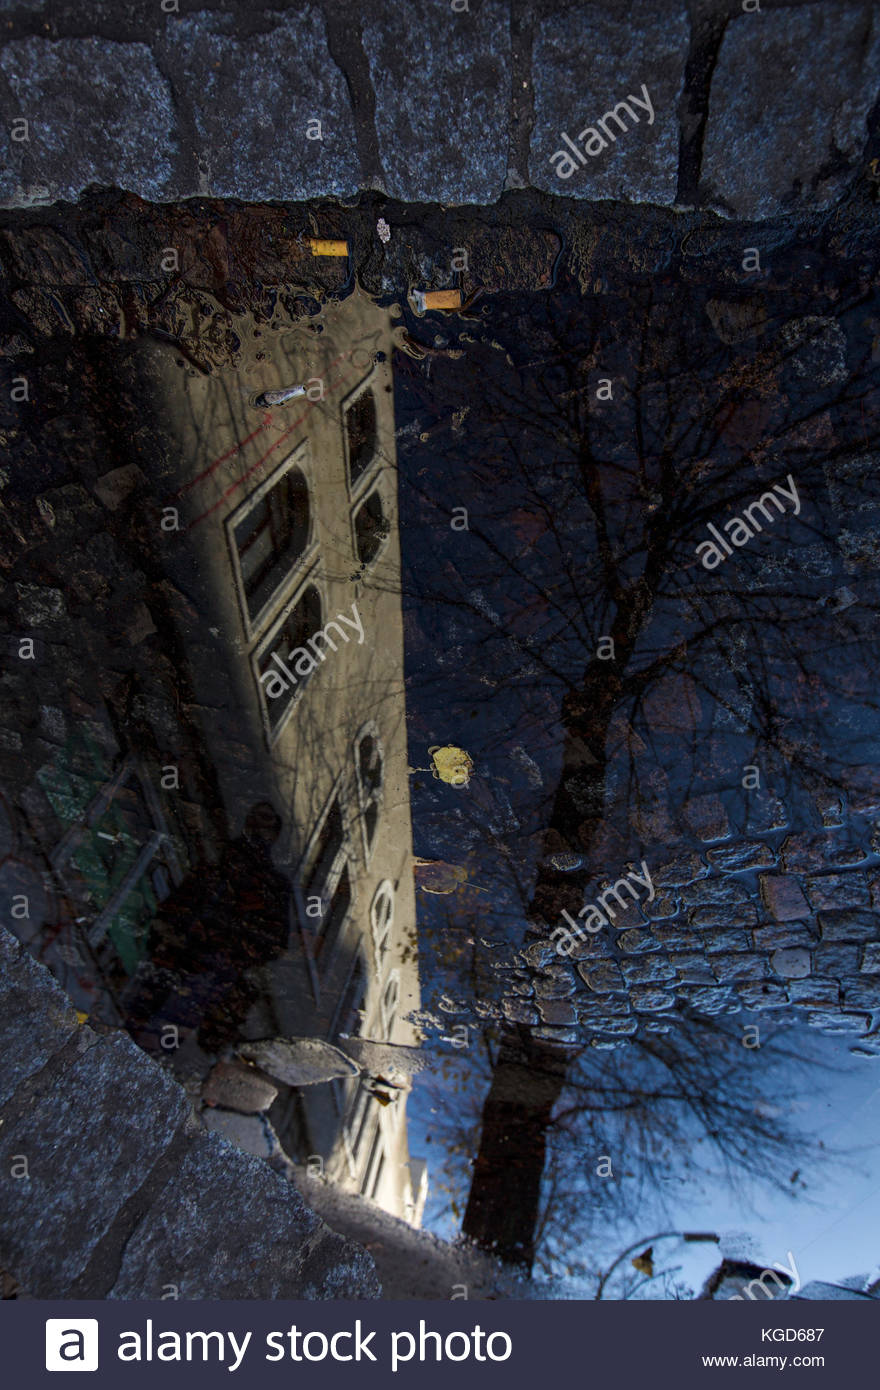 Reflection of a Street Walker - Stock Image